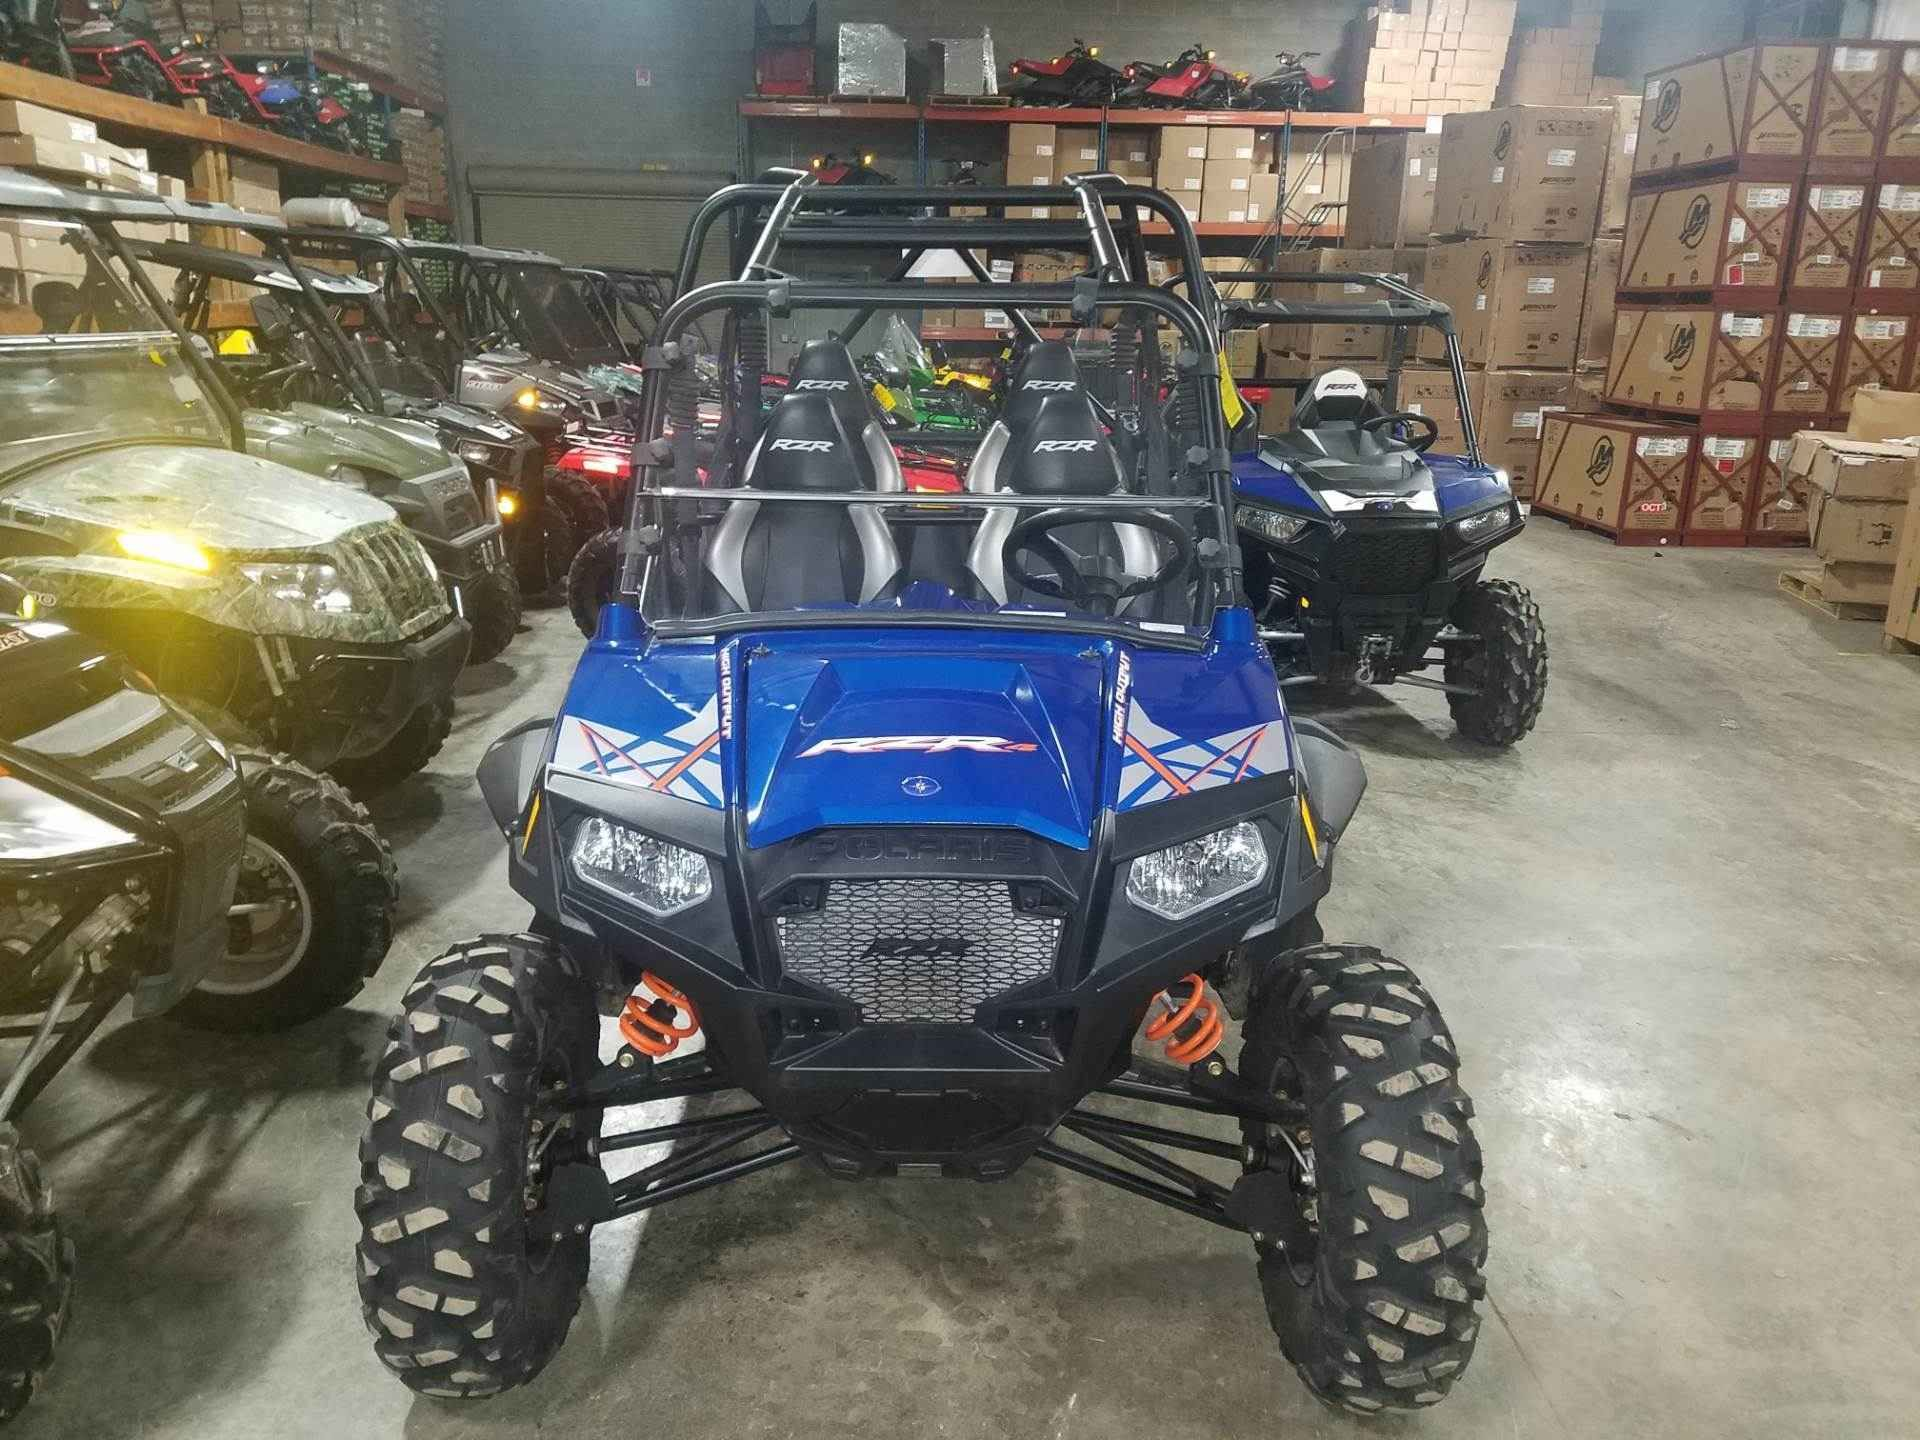 medium resolution of used 2013 polaris rzr 4 800 eps le atvs for sale in wisconsin